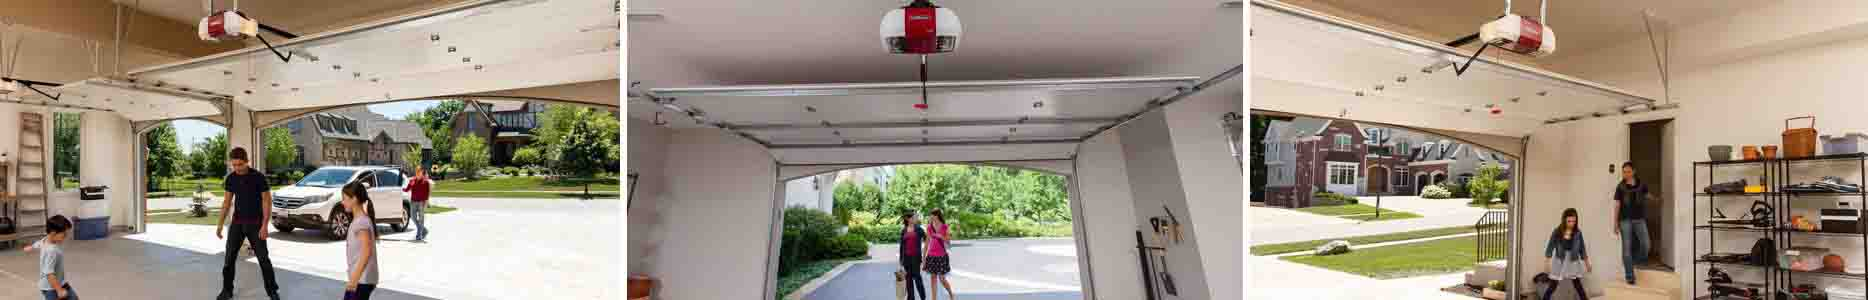 Garage door openers header